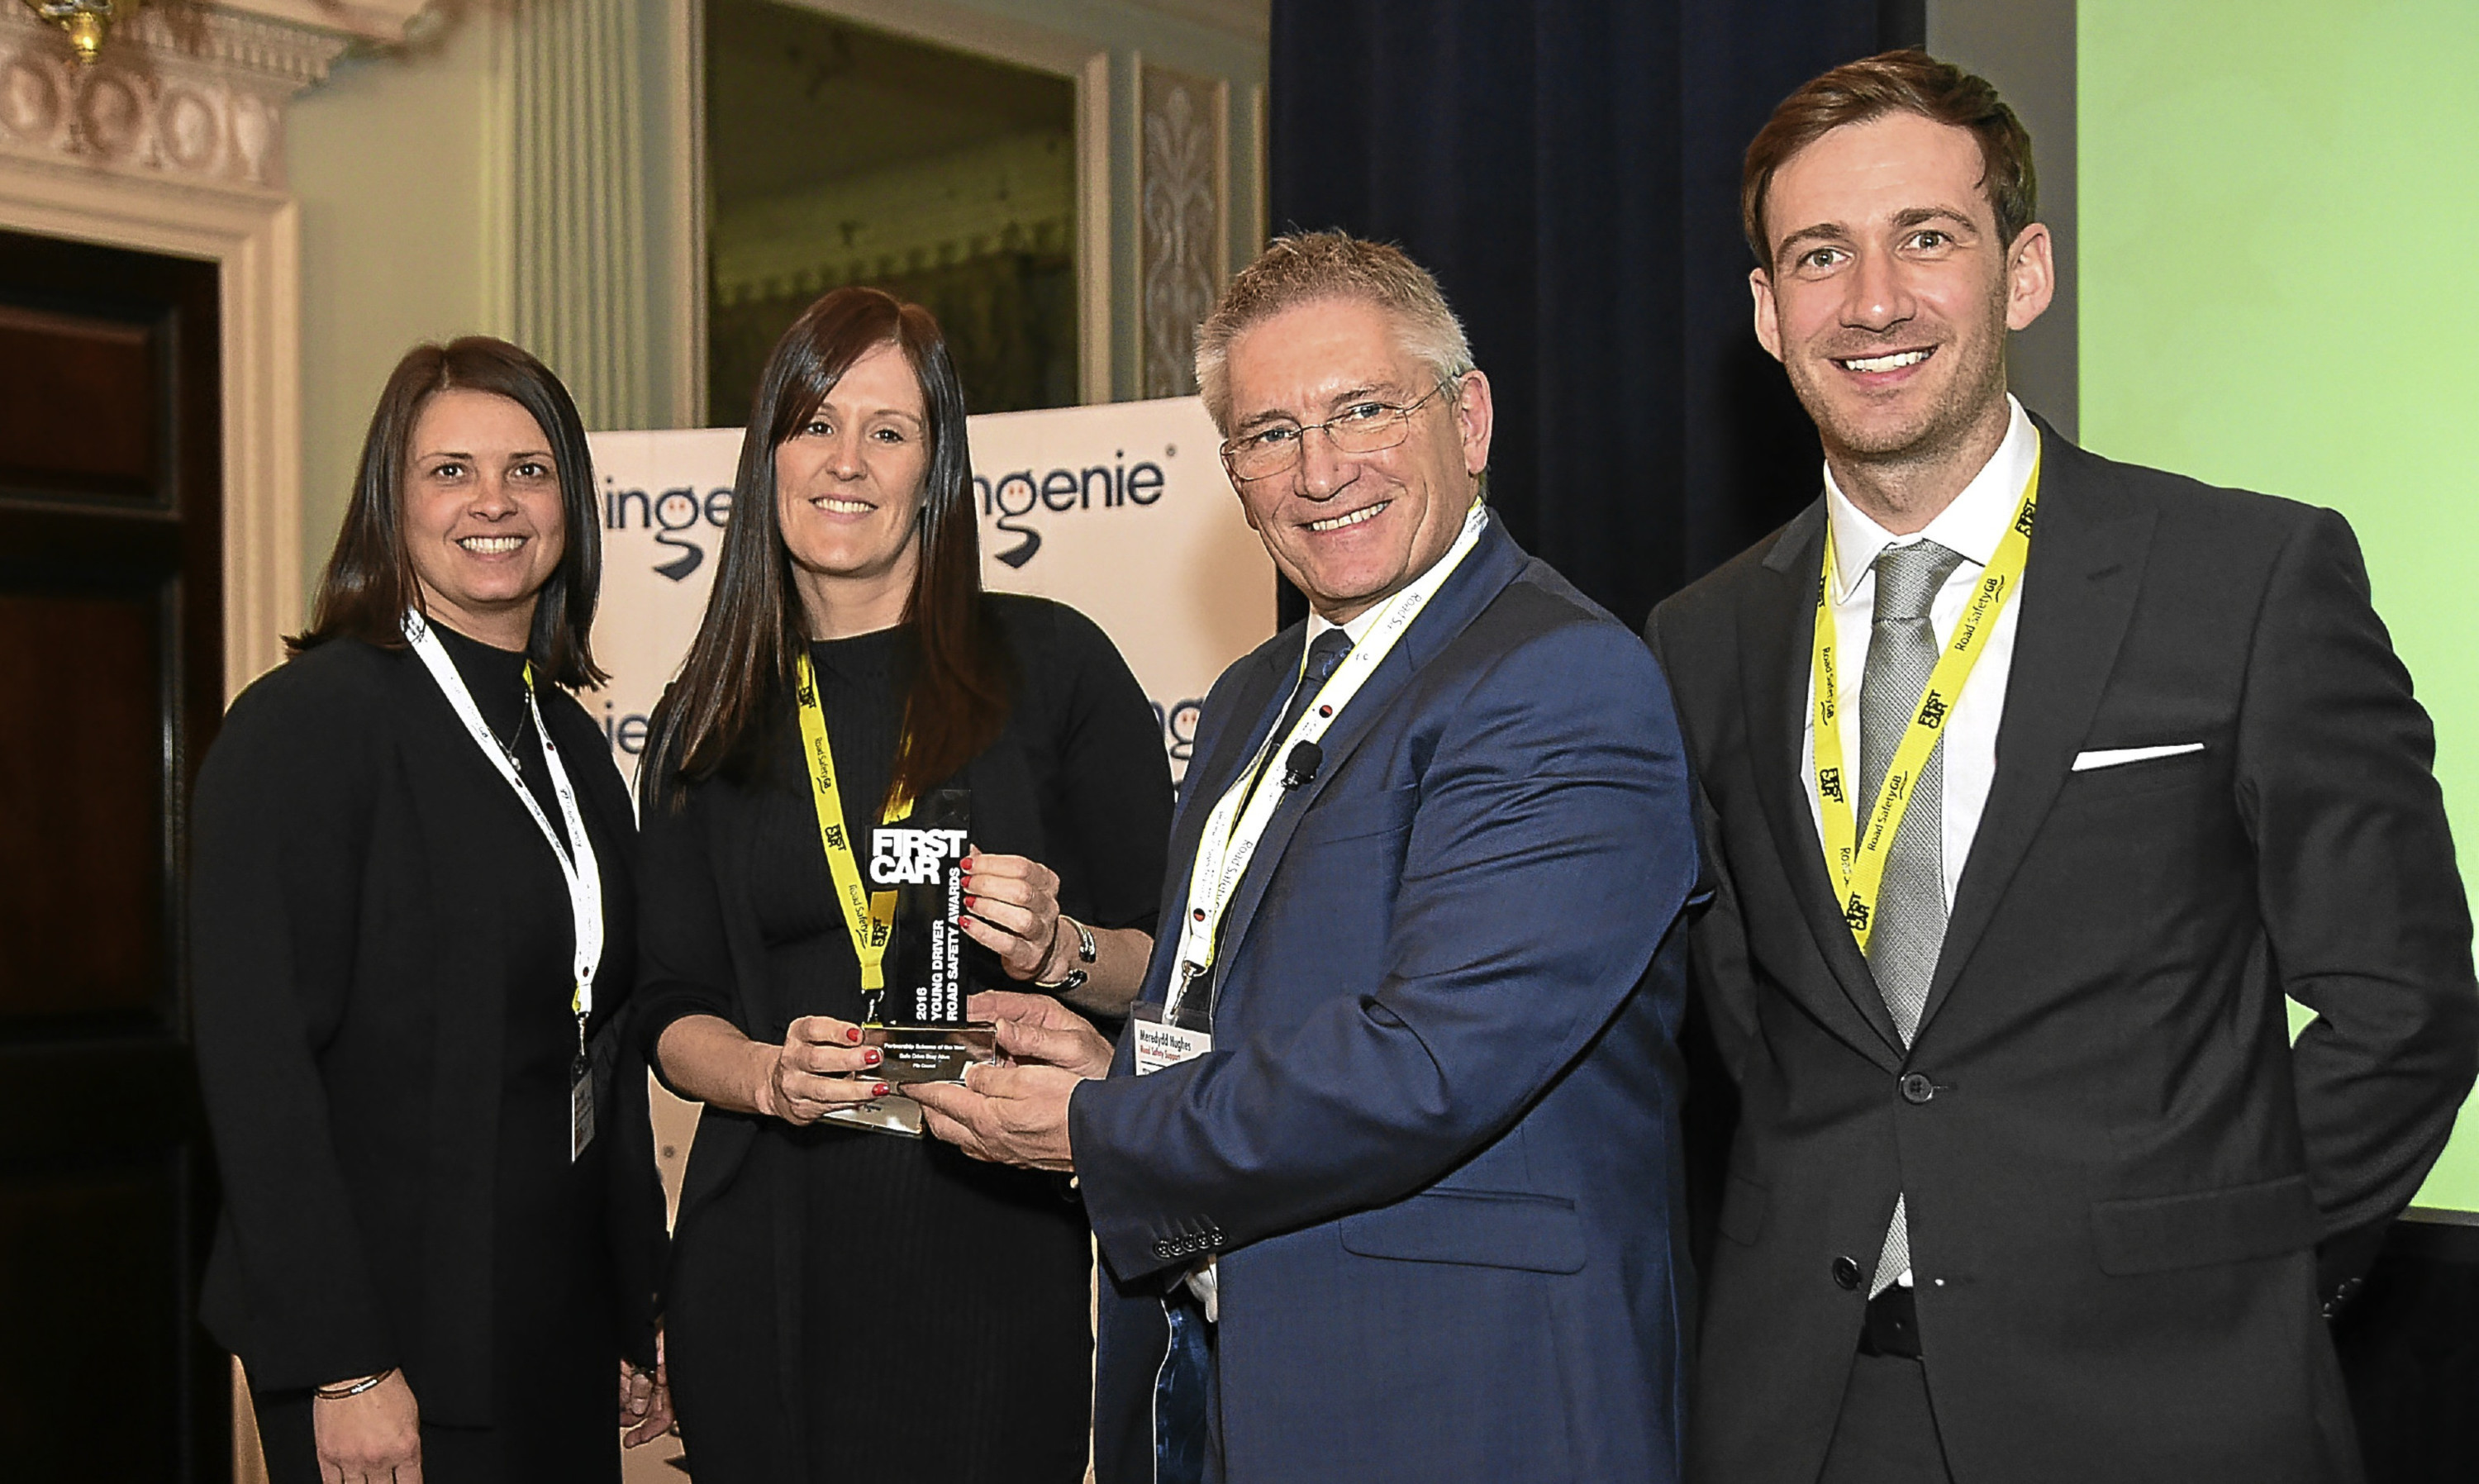 Stacey McLelland Hodge and Nicola Philp collecting the award on behalf of the team.